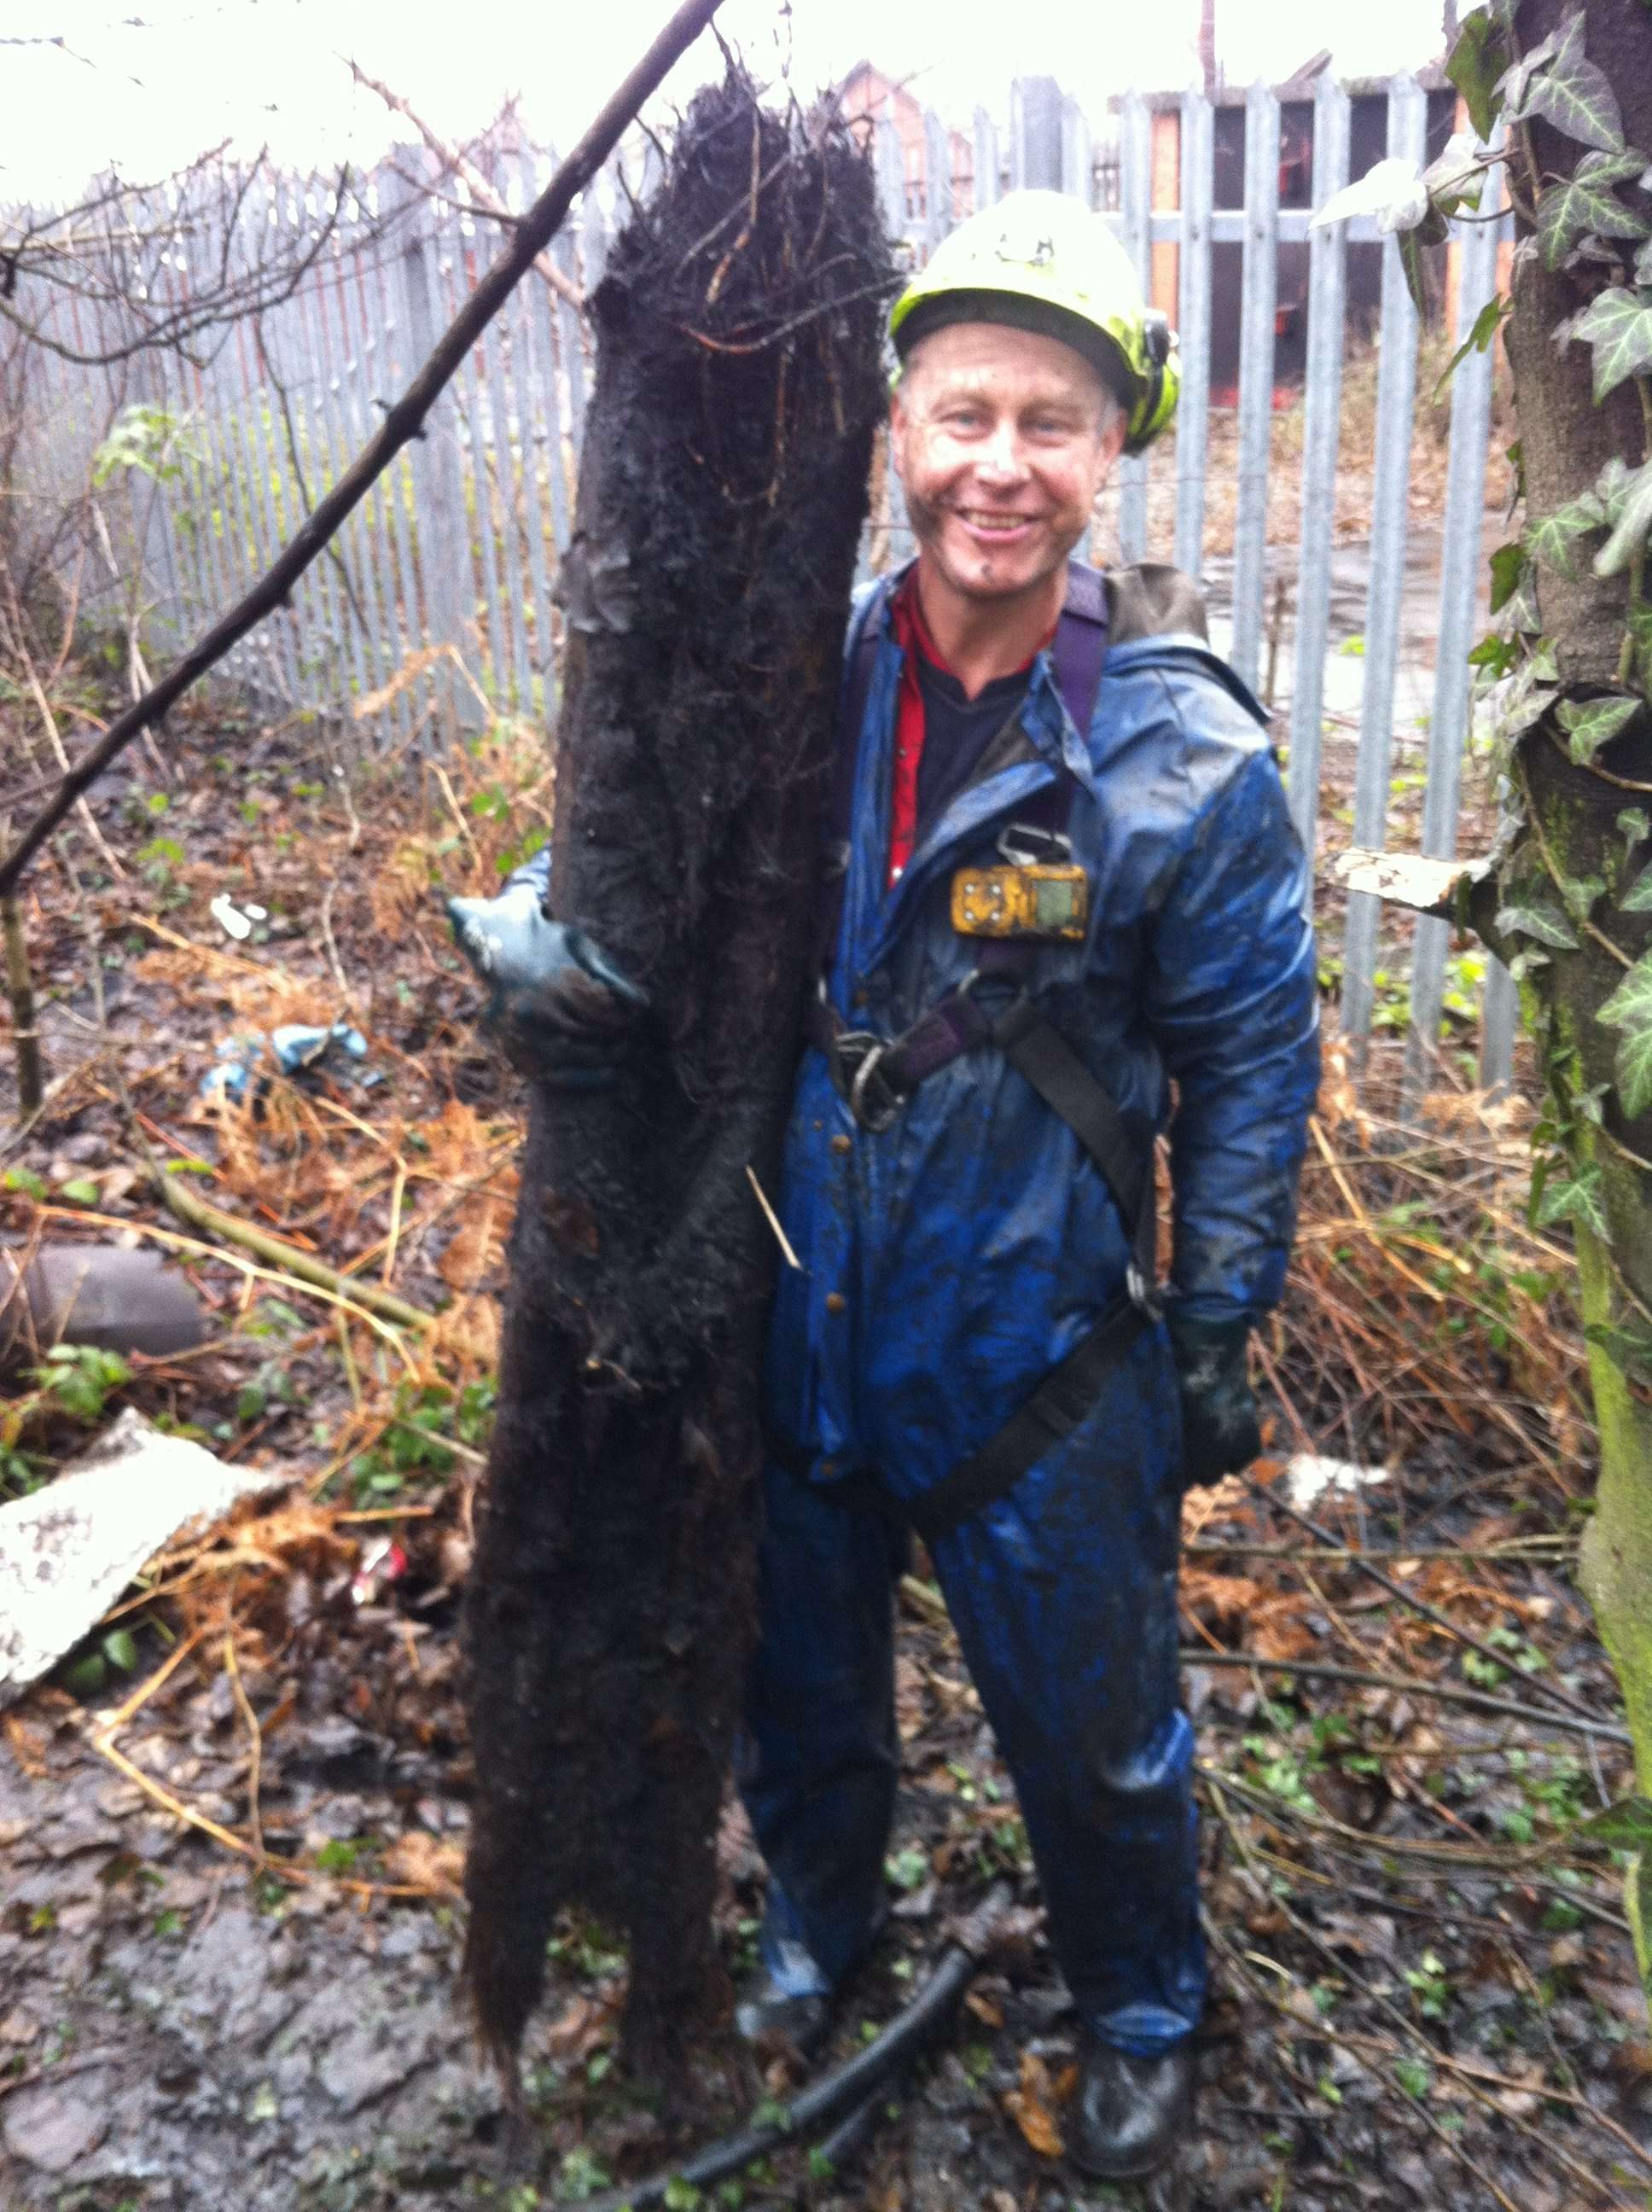 Gary with a very large root that was causing a waste blockage